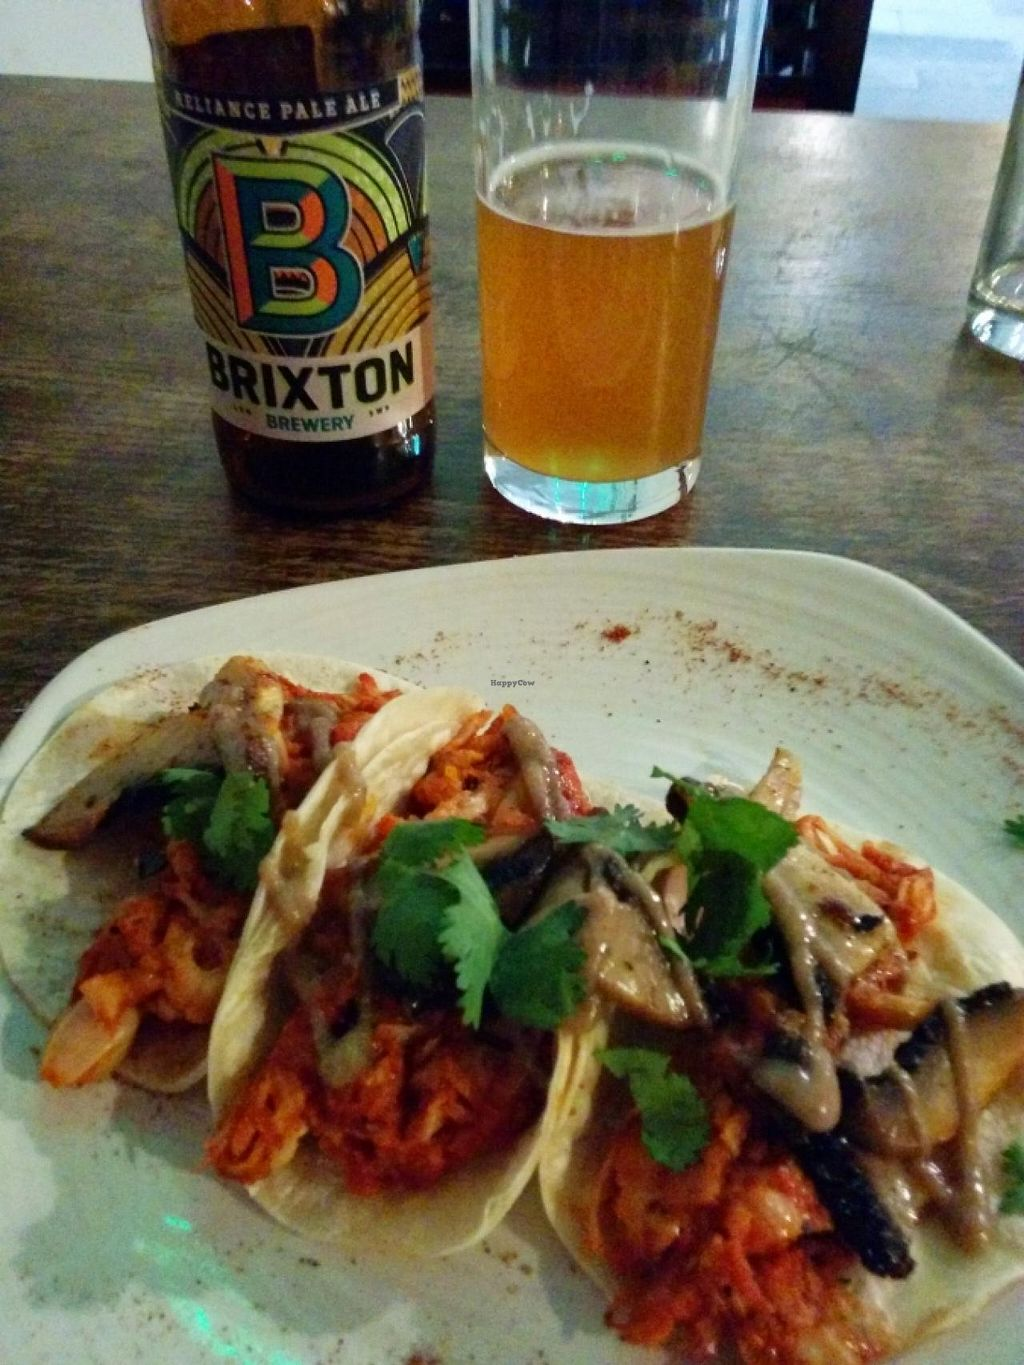 """Photo of CLOSED: Veg Bar  by <a href=""""/members/profile/CLRtraveller"""">CLRtraveller</a> <br/>jackfruit tacos <br/> June 17, 2015  - <a href='/contact/abuse/image/56985/106224'>Report</a>"""